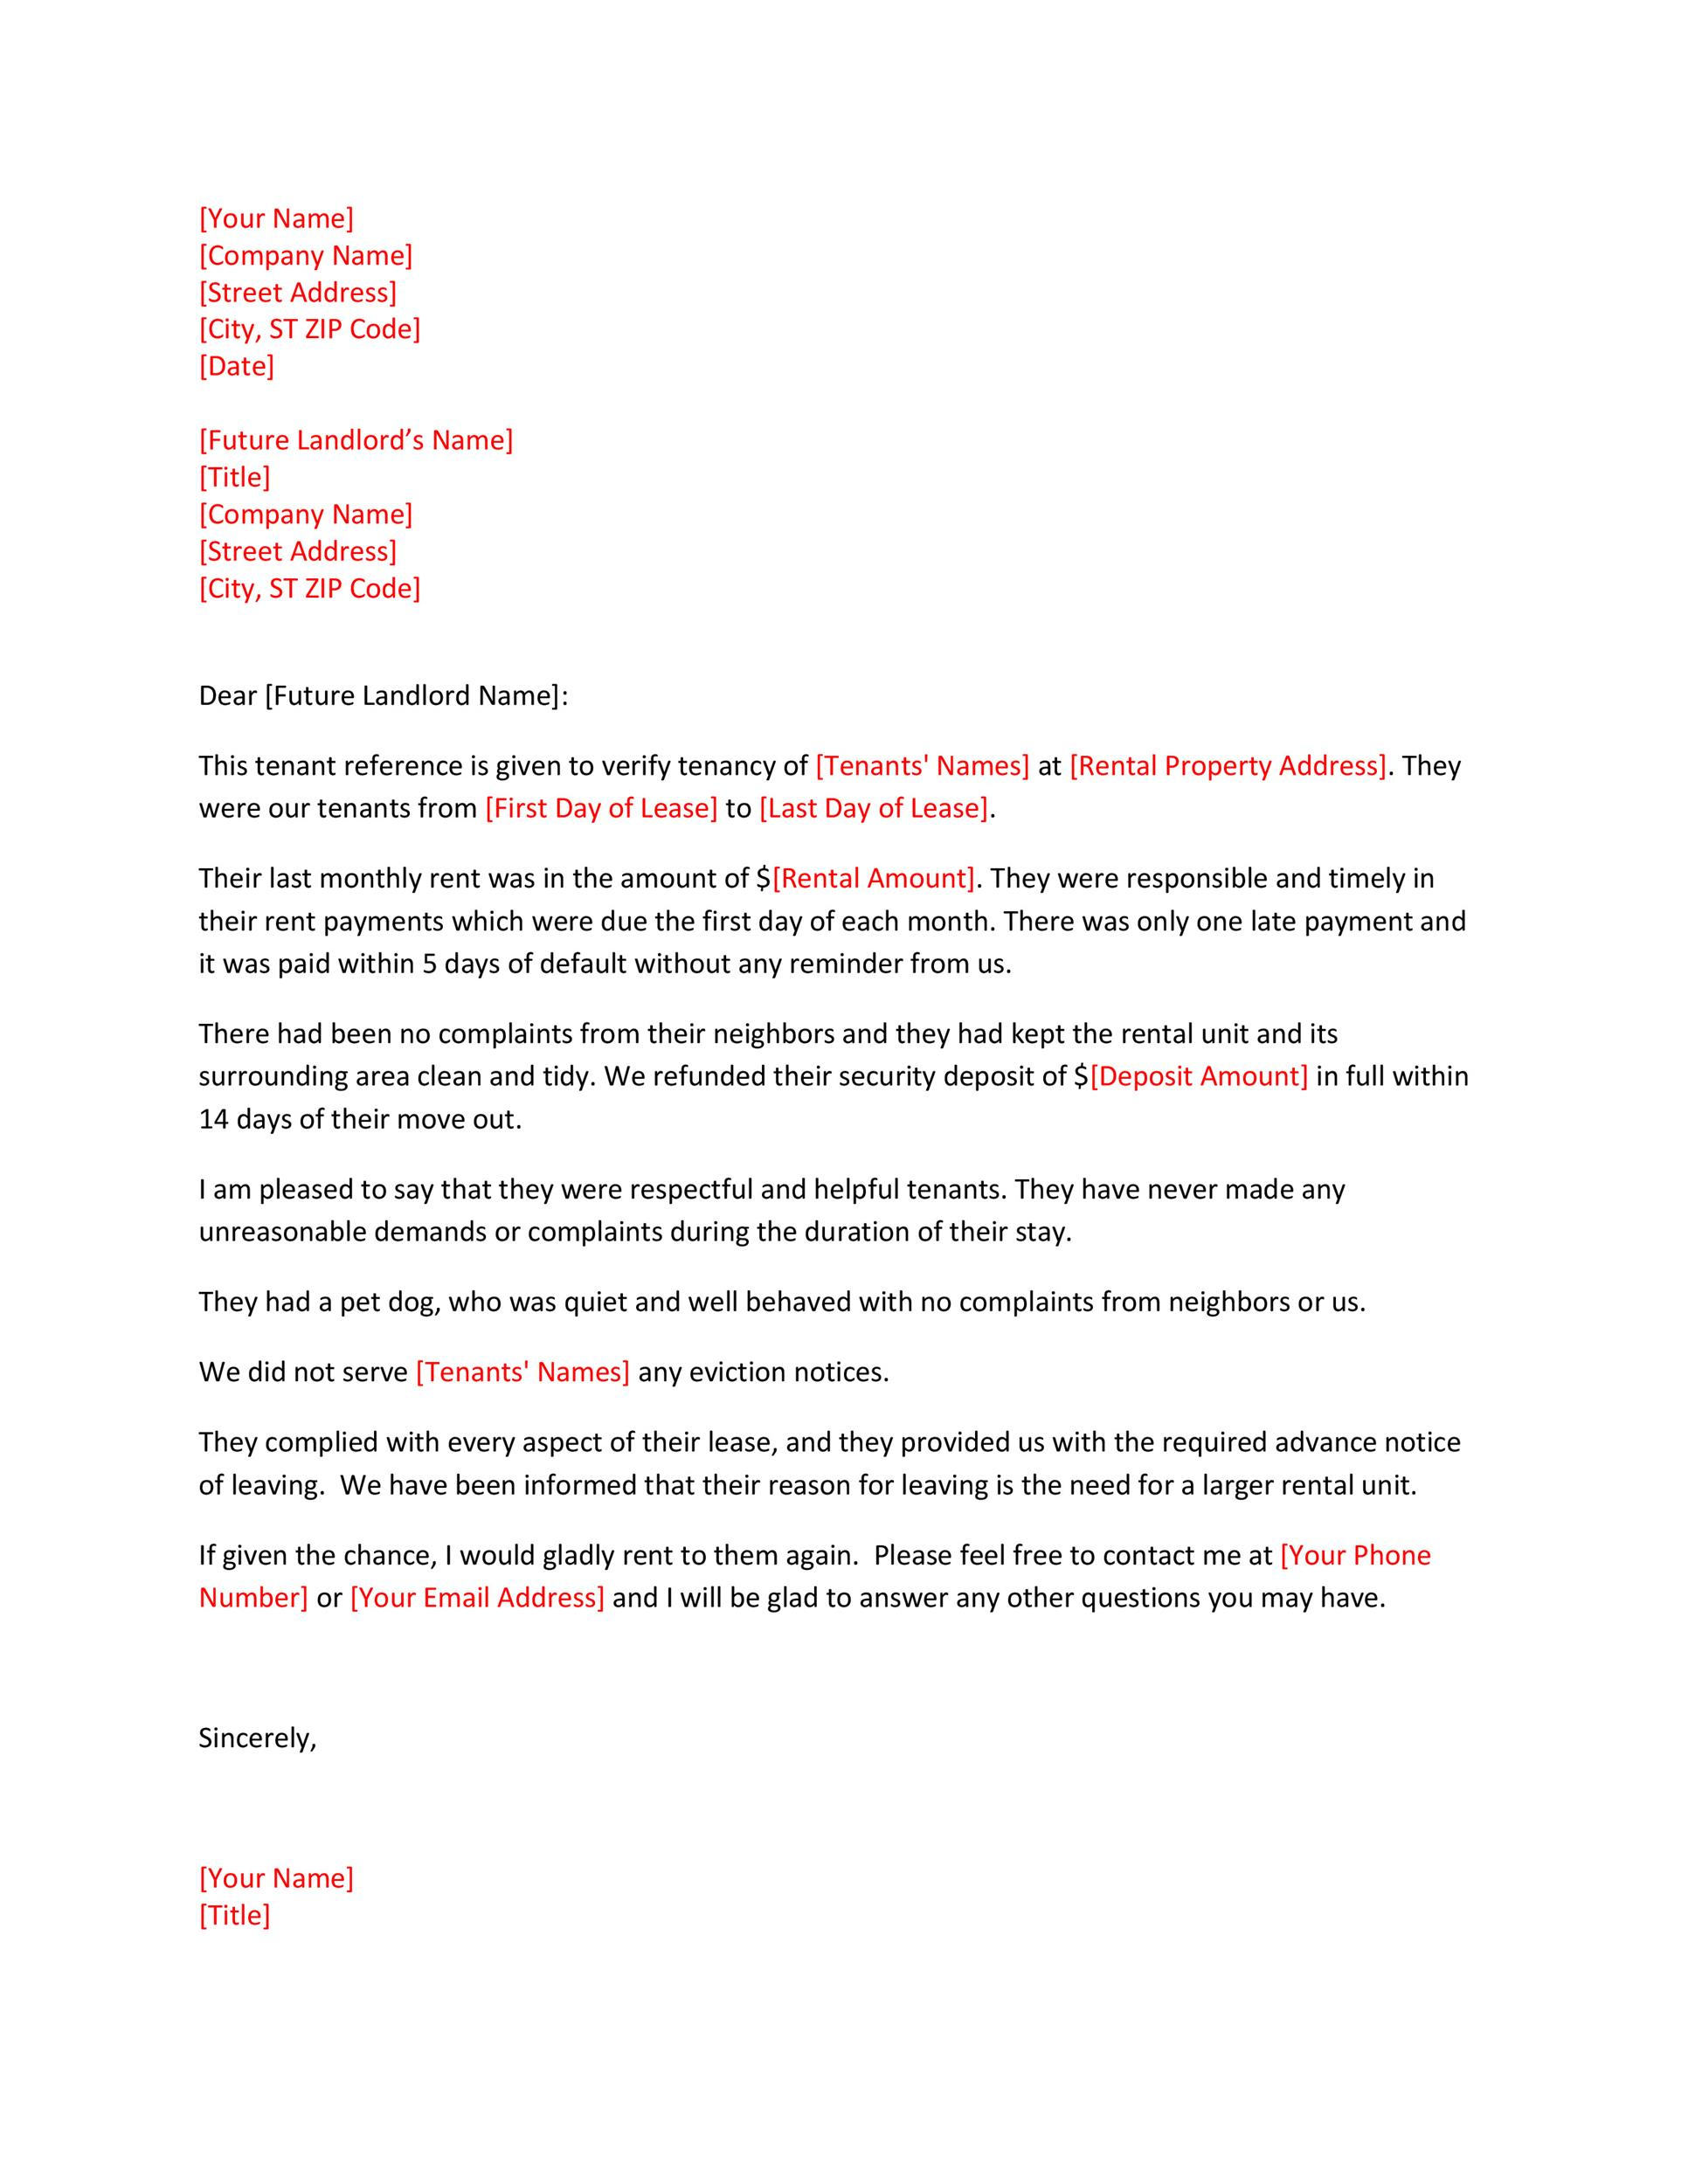 Free landlord reference letter 06